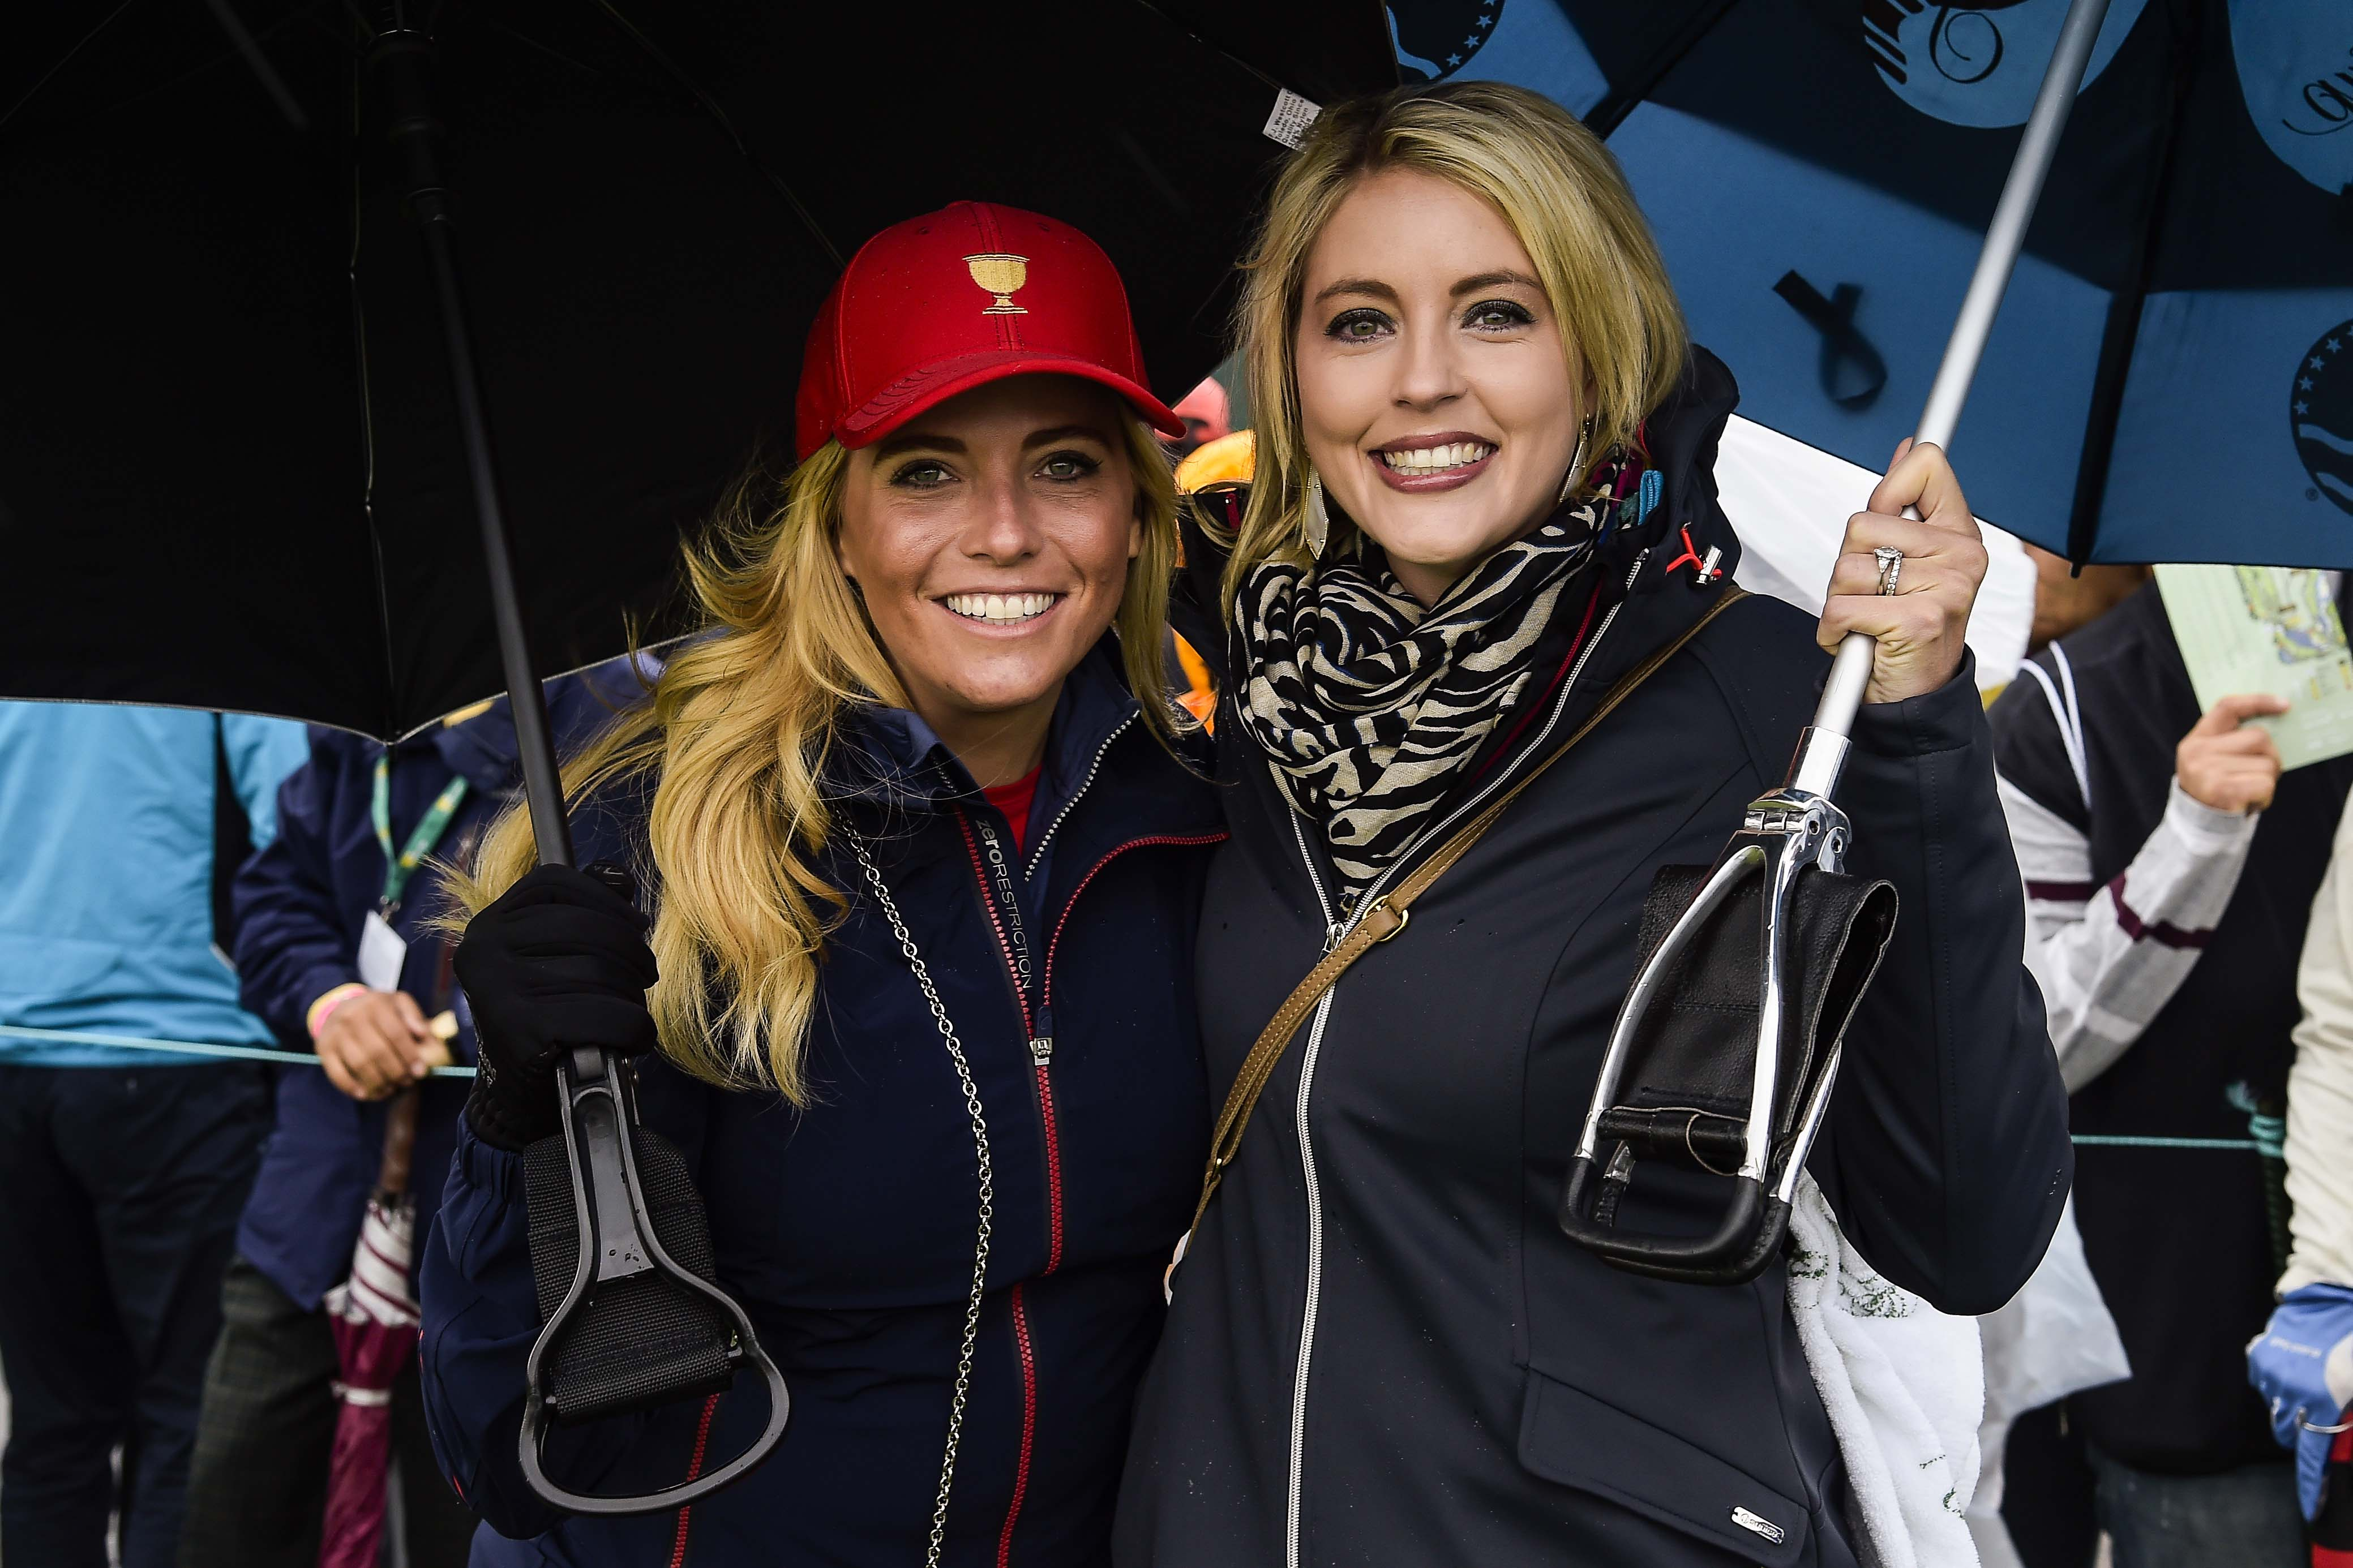 Amy Mickelson and Rosalind Schwartzel